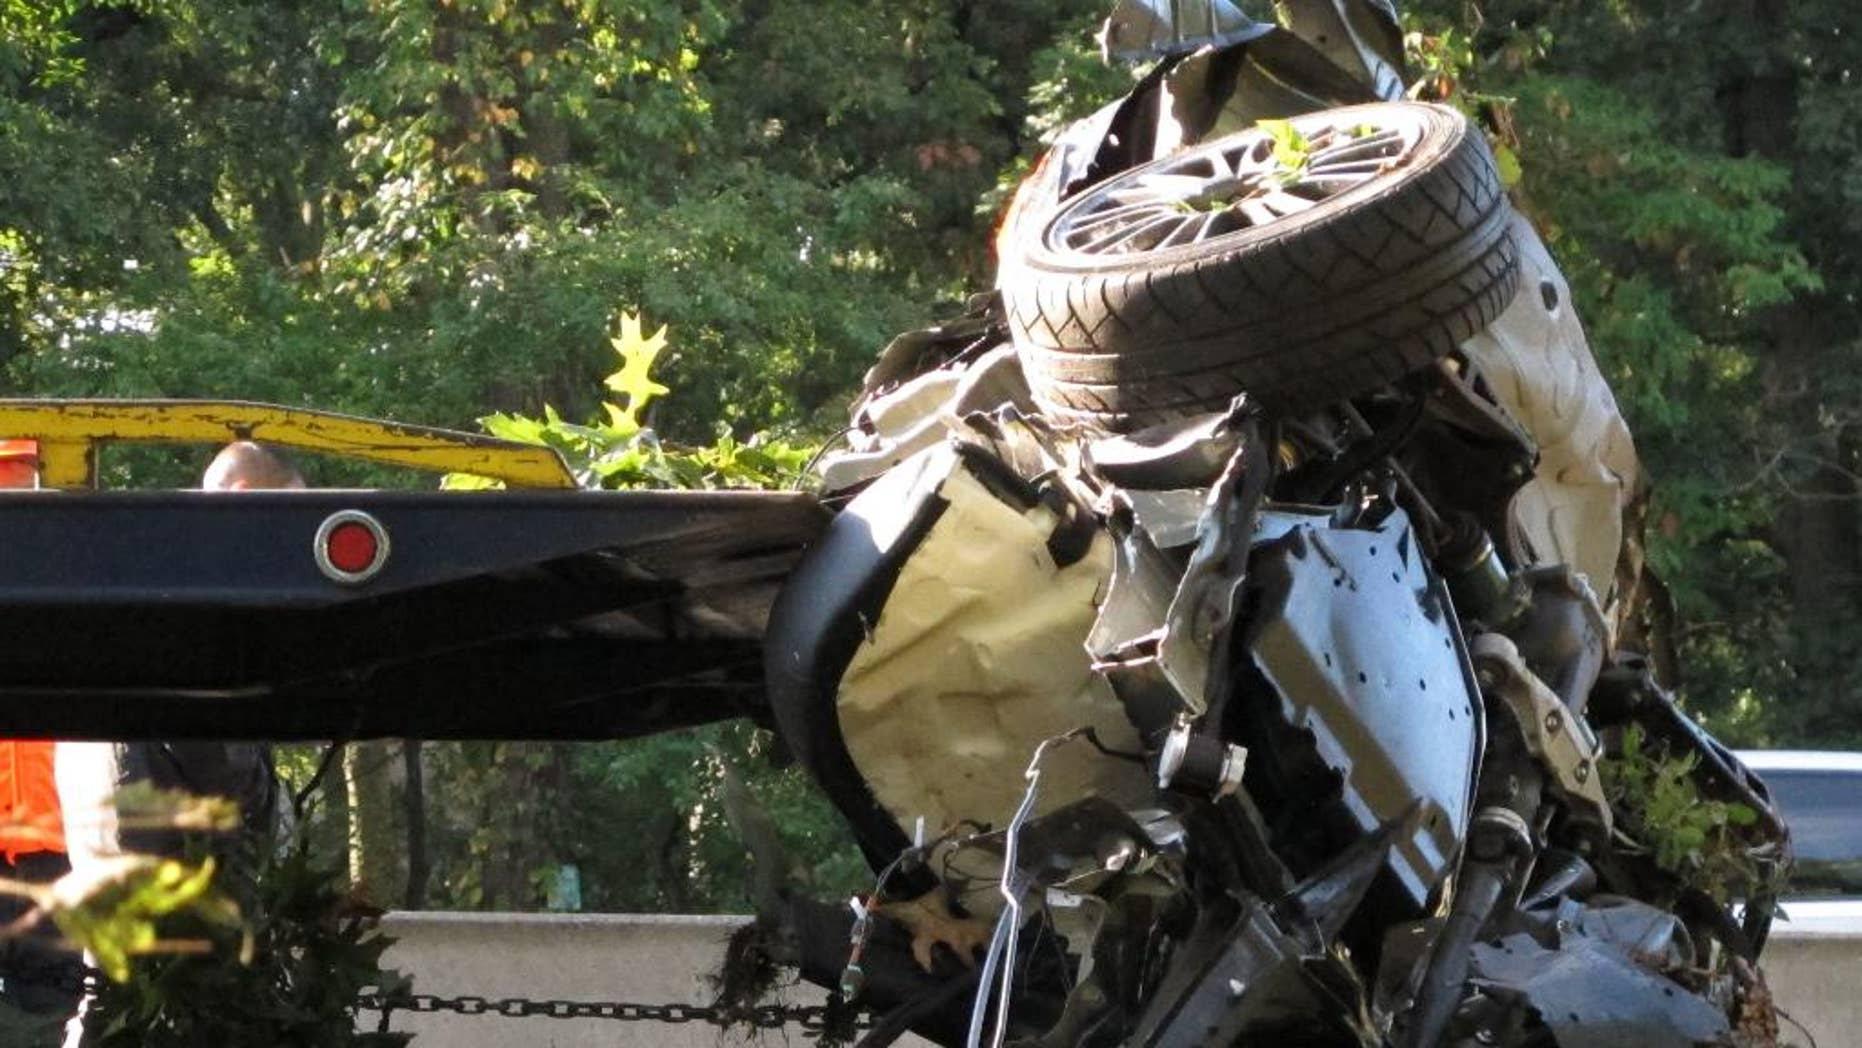 FILE - In this Oct. 8, 2012 file photo, a wrecked car is loaded onto a flatbed truck on the Southern State Parkway in West Hempstead, N.Y., after four people died in an early-morning accident. Joseph Beer, a New York City teenager who admitted being high on marijuana and speeding when he slammed into a tree, was convicted of four counts of vehicular manslaughter in the deaths of his friends, returns to court on Tuesday July 29, 2014 to hear if a prosecutor will retry him on aggravated vehicular homicide charges. (AP Photo/Frank Eltman, File)